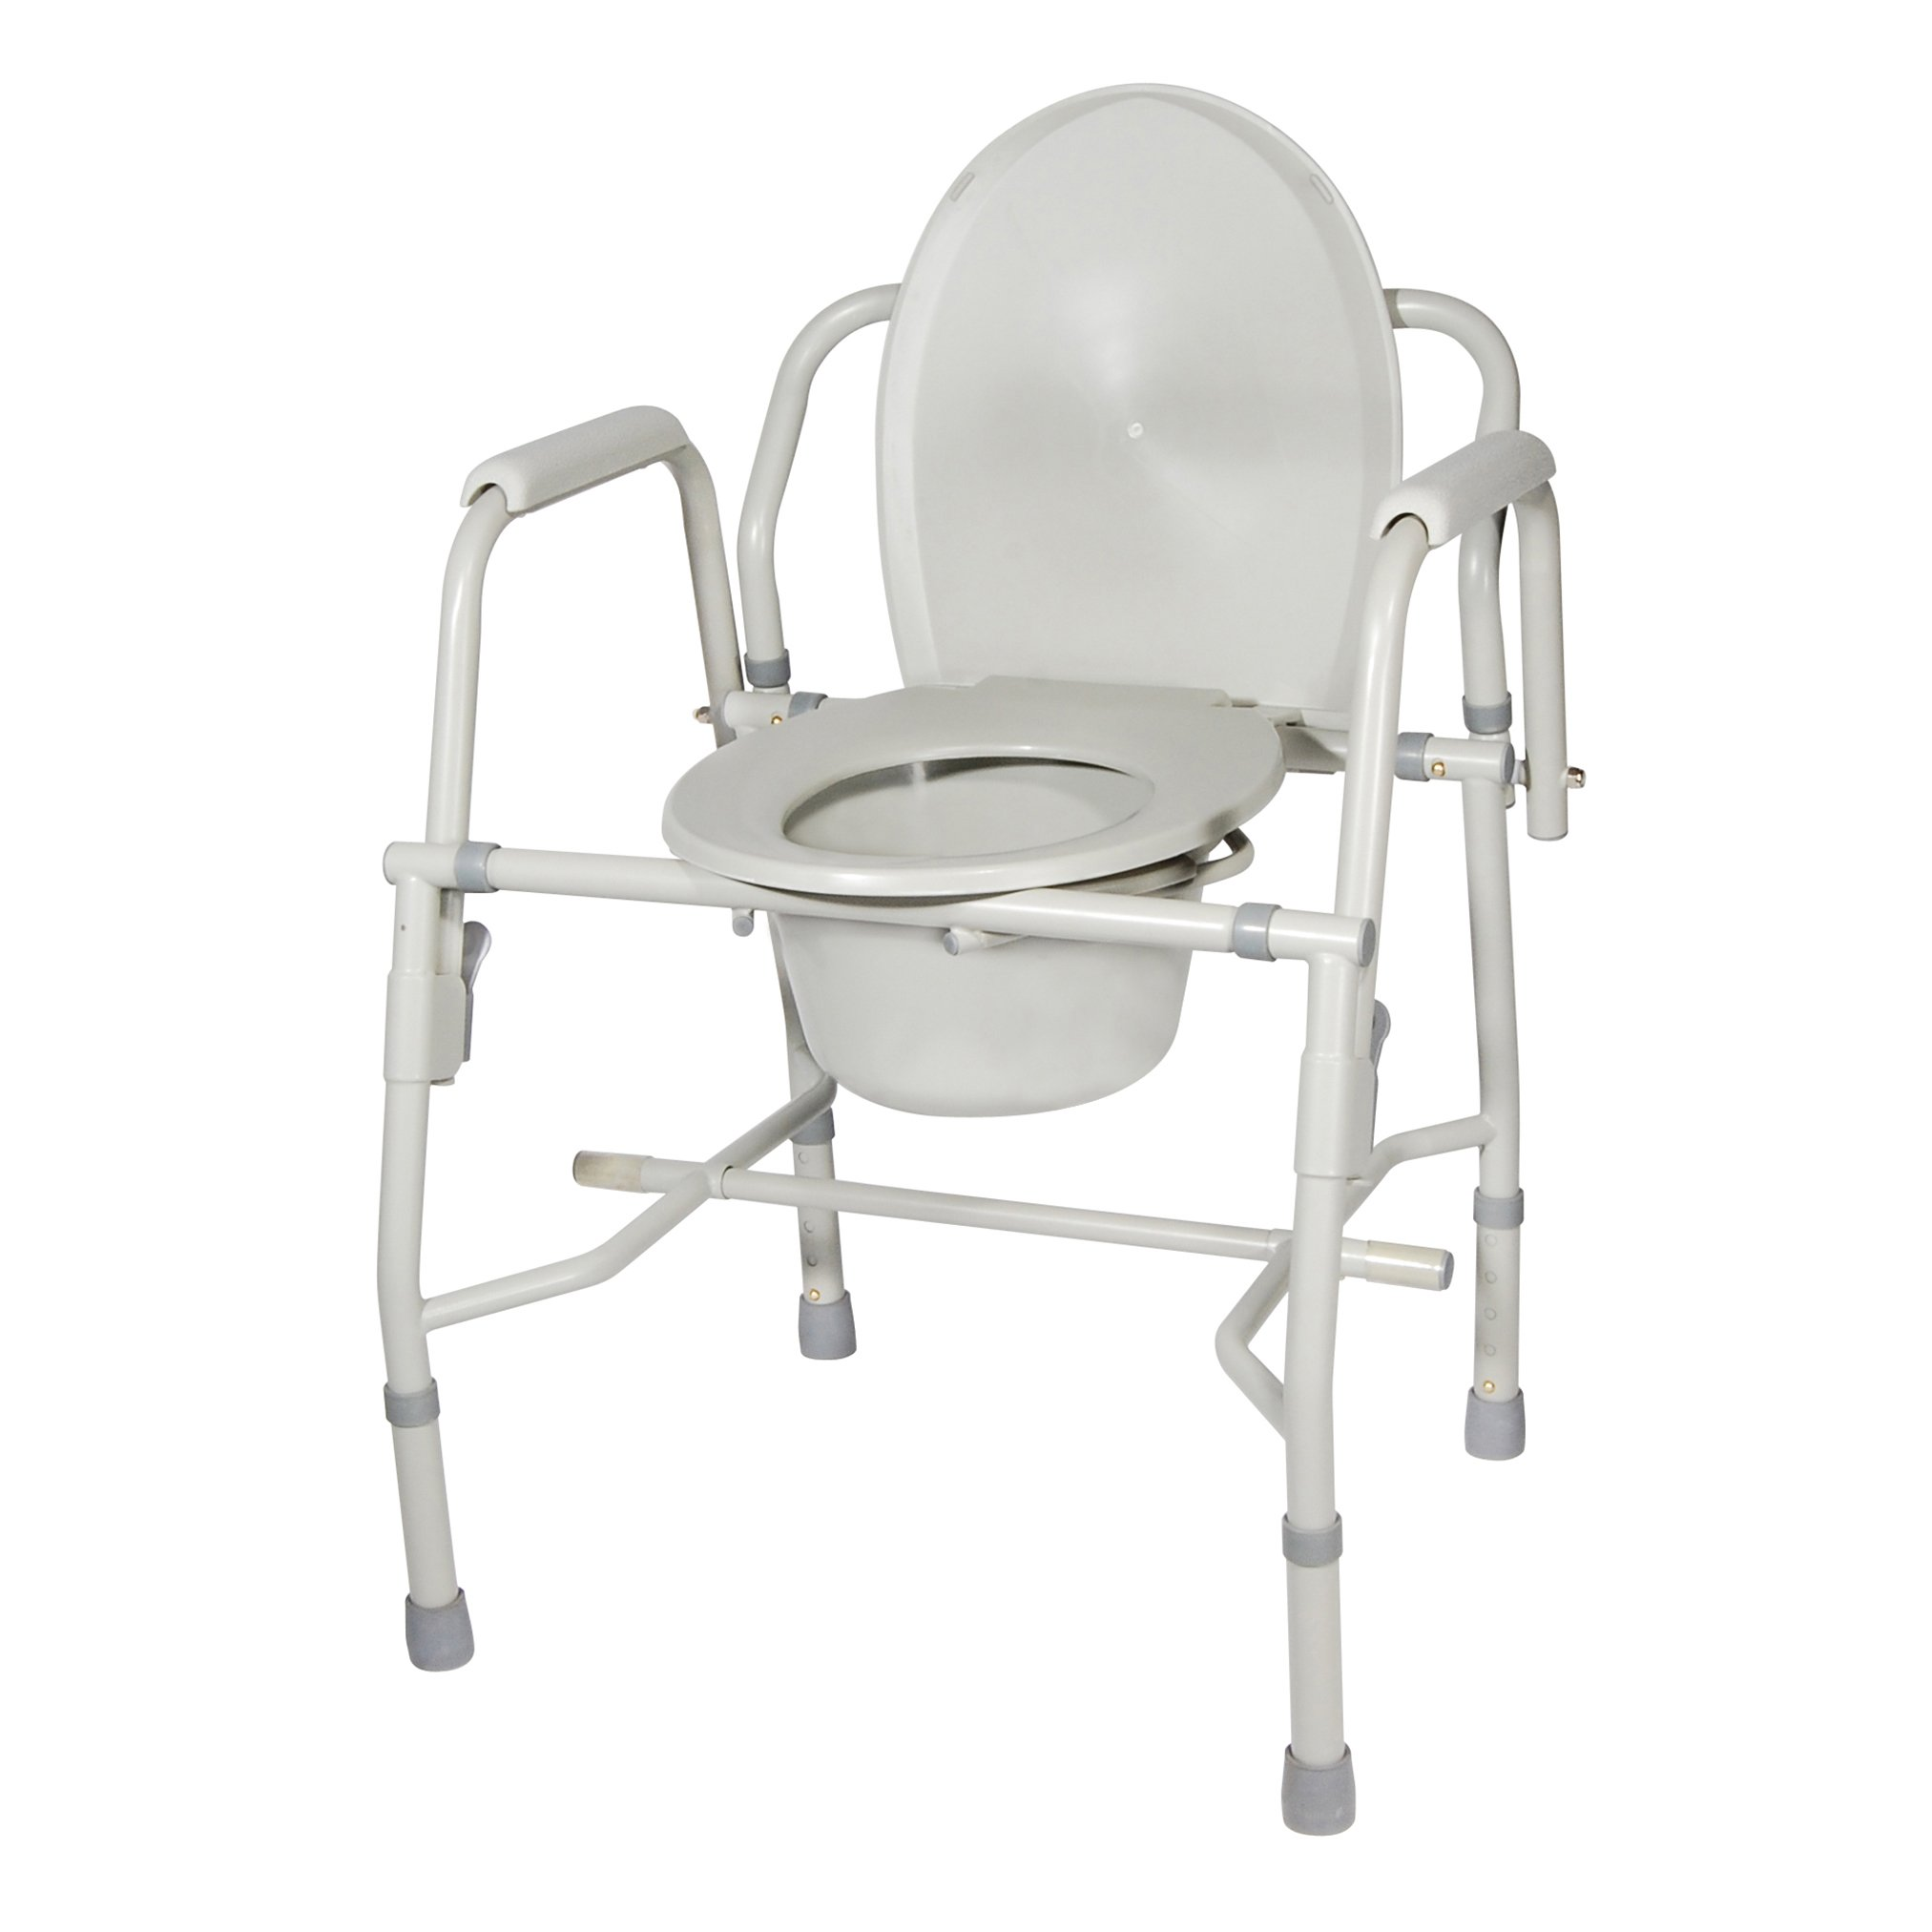 Drive Medical K. D. Deluxe Steel Drop-Arm Commode (Tool Free)